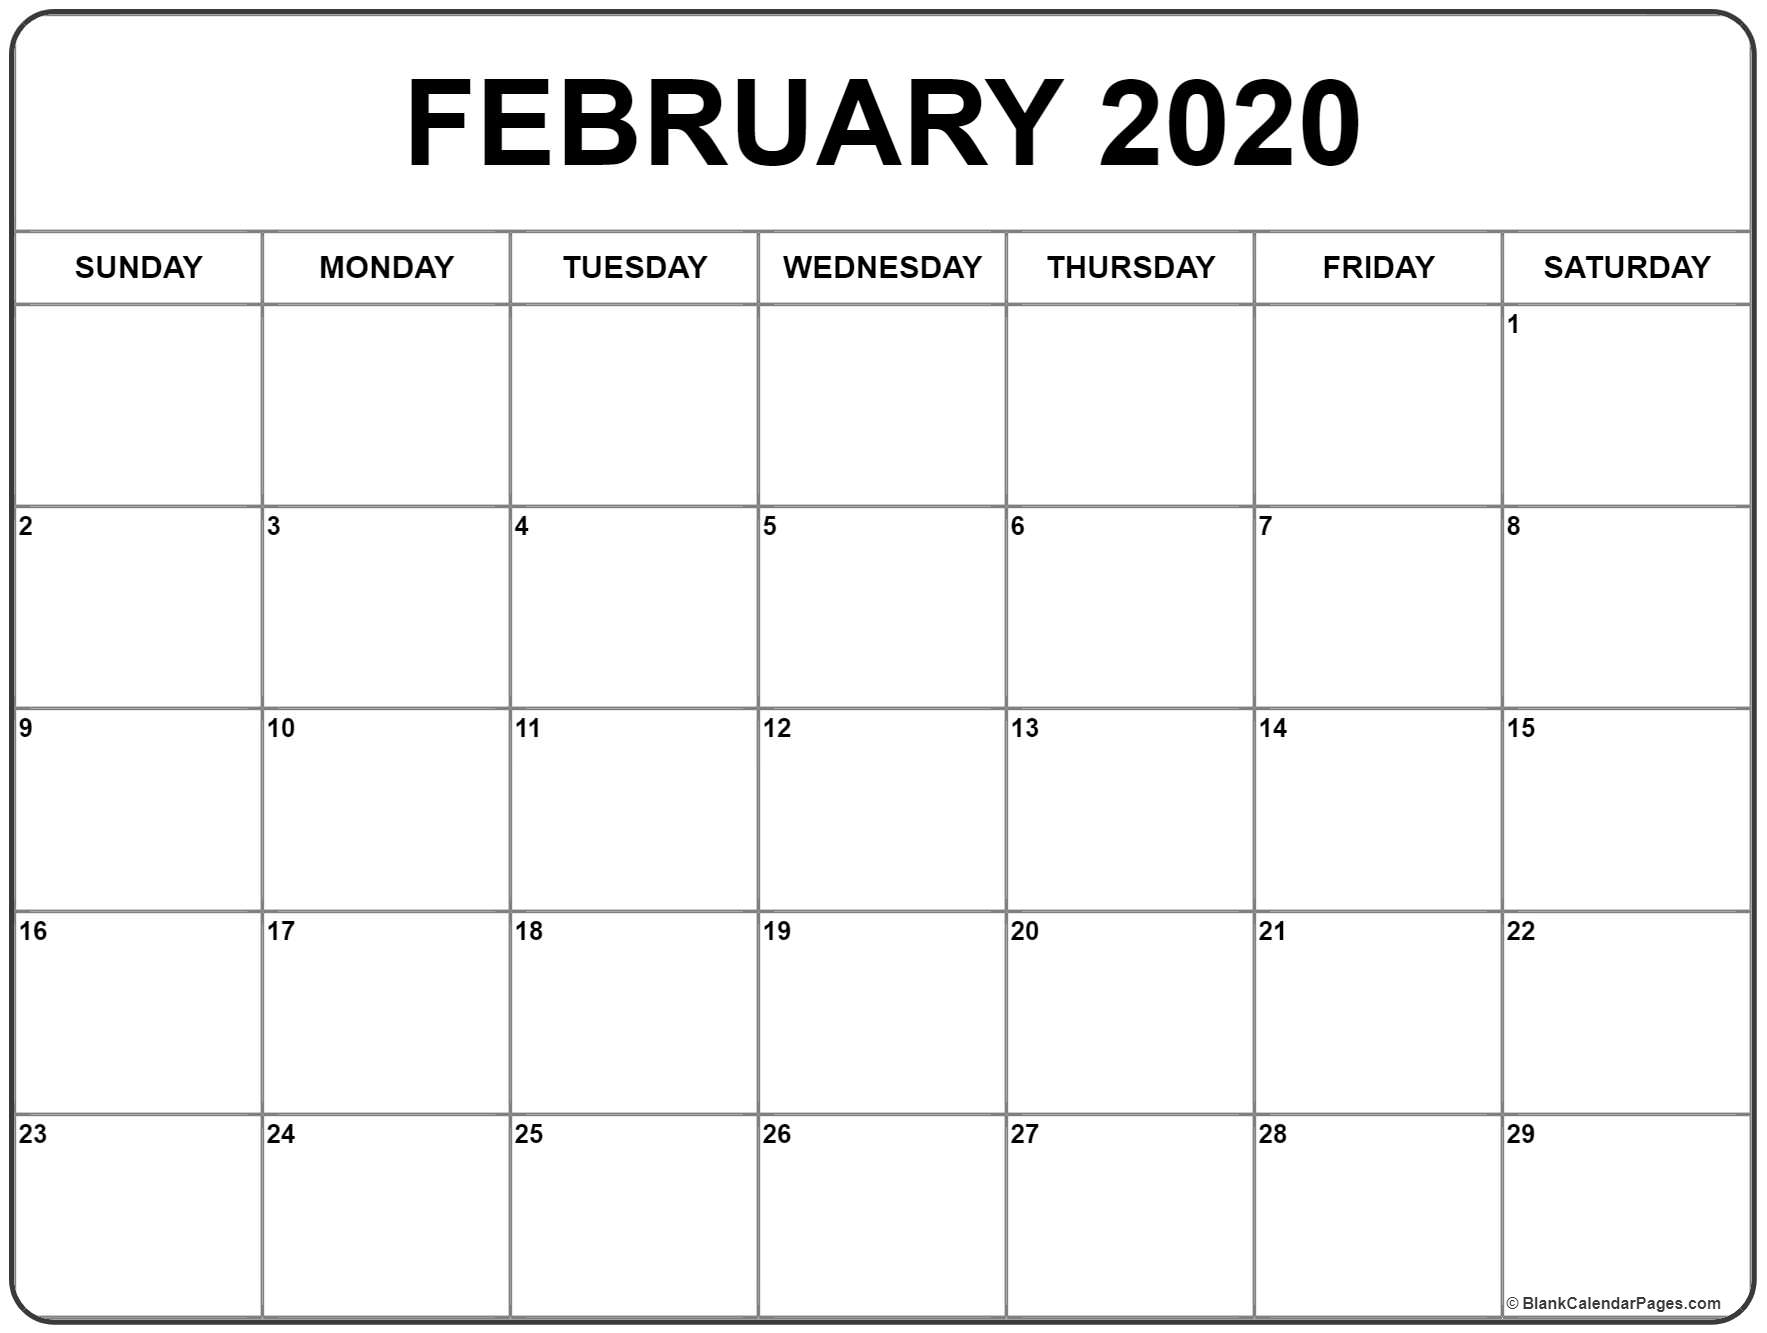 February 2020 Calendar | Free Printable Monthly Calendars pertaining to 2020 Calendars To Fill In